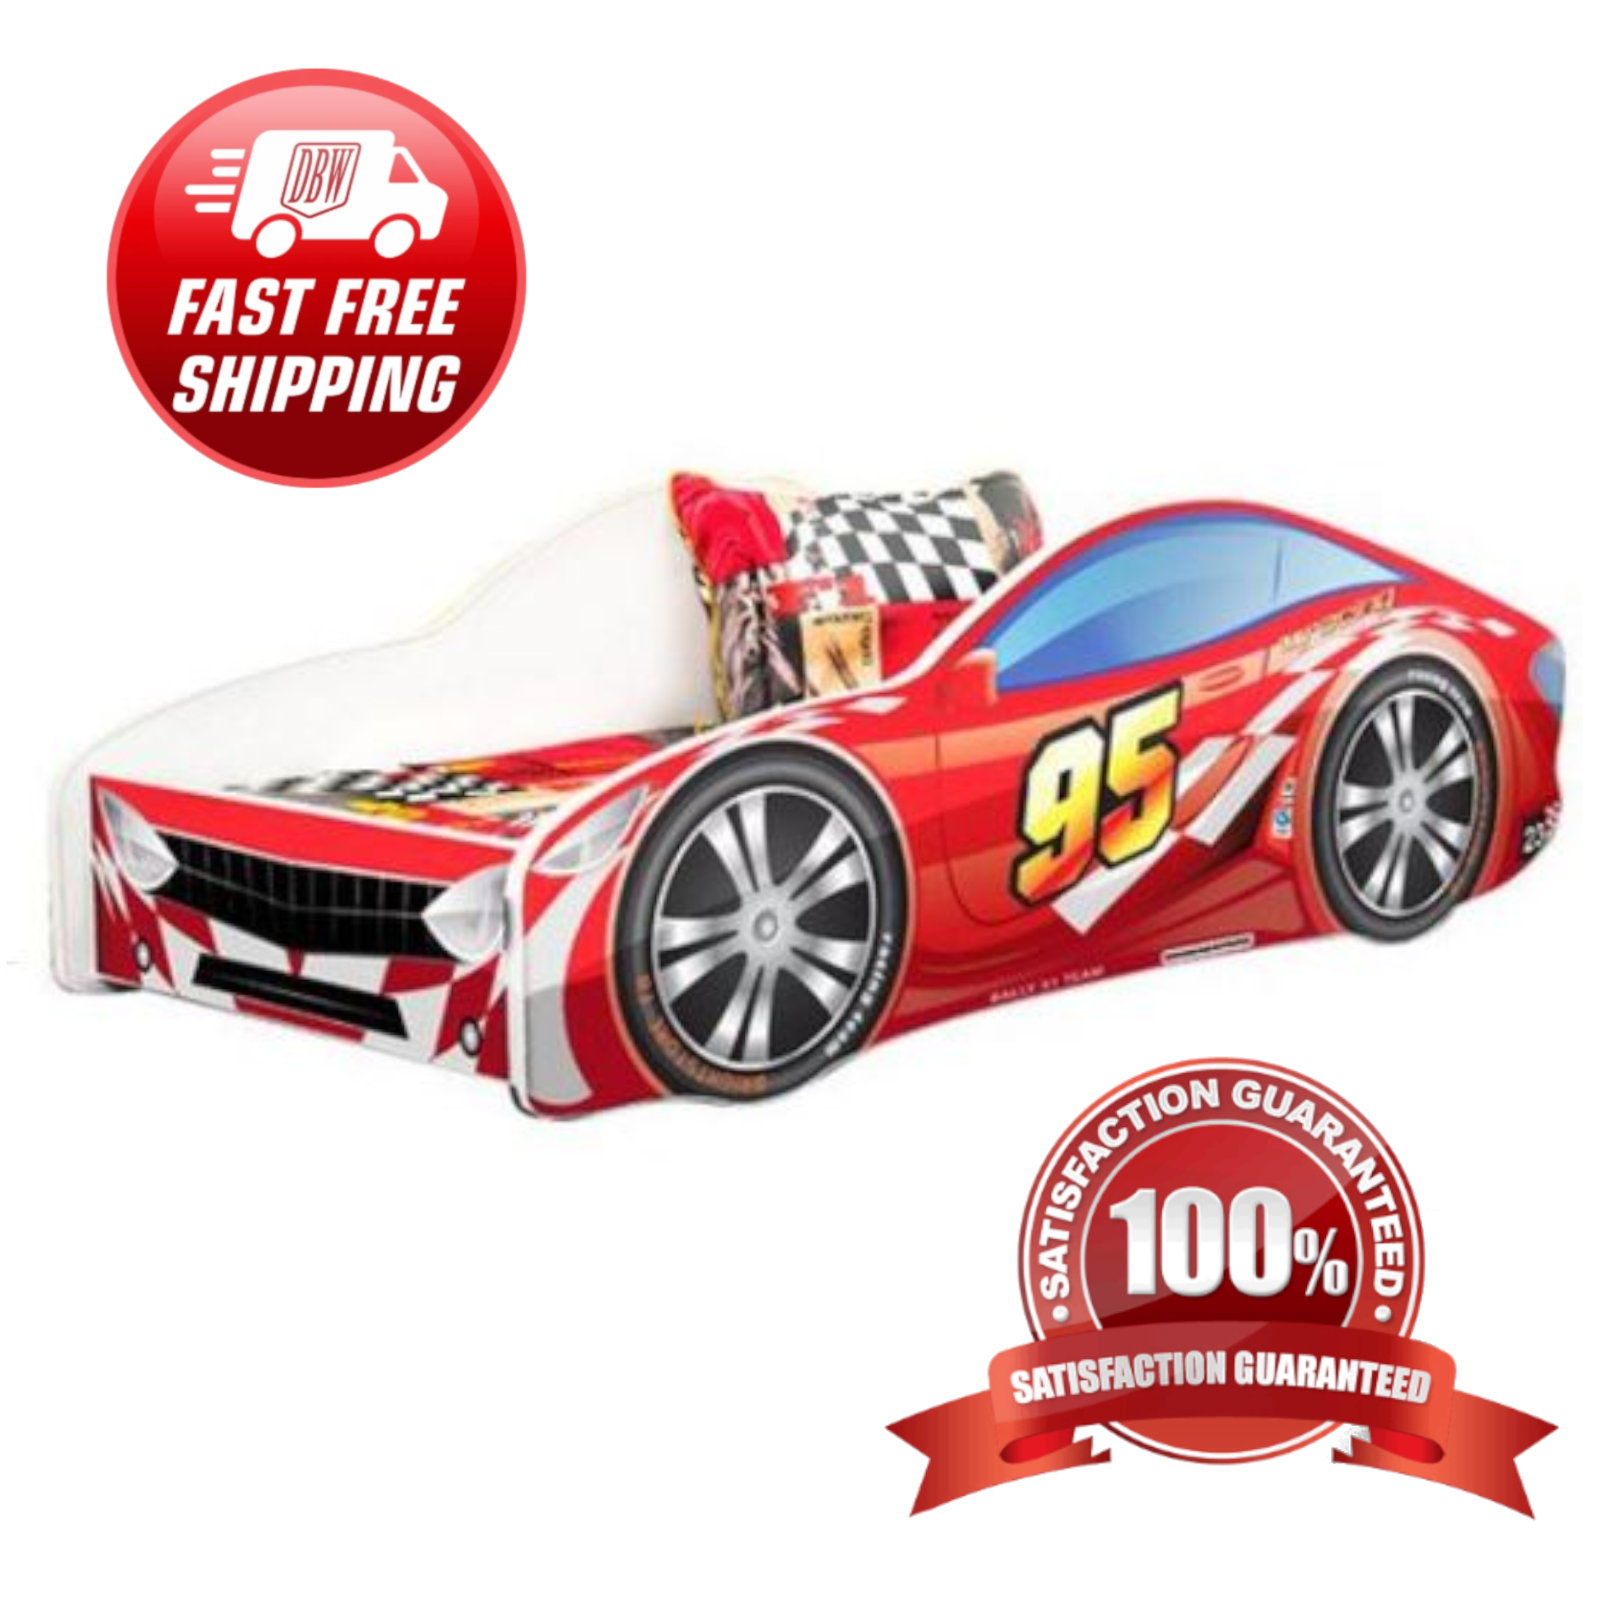 Race Car Bed For Boys Racing Red Turbo Twin Kids Bedroom Furniture Toddlers For Sale Online Ebay